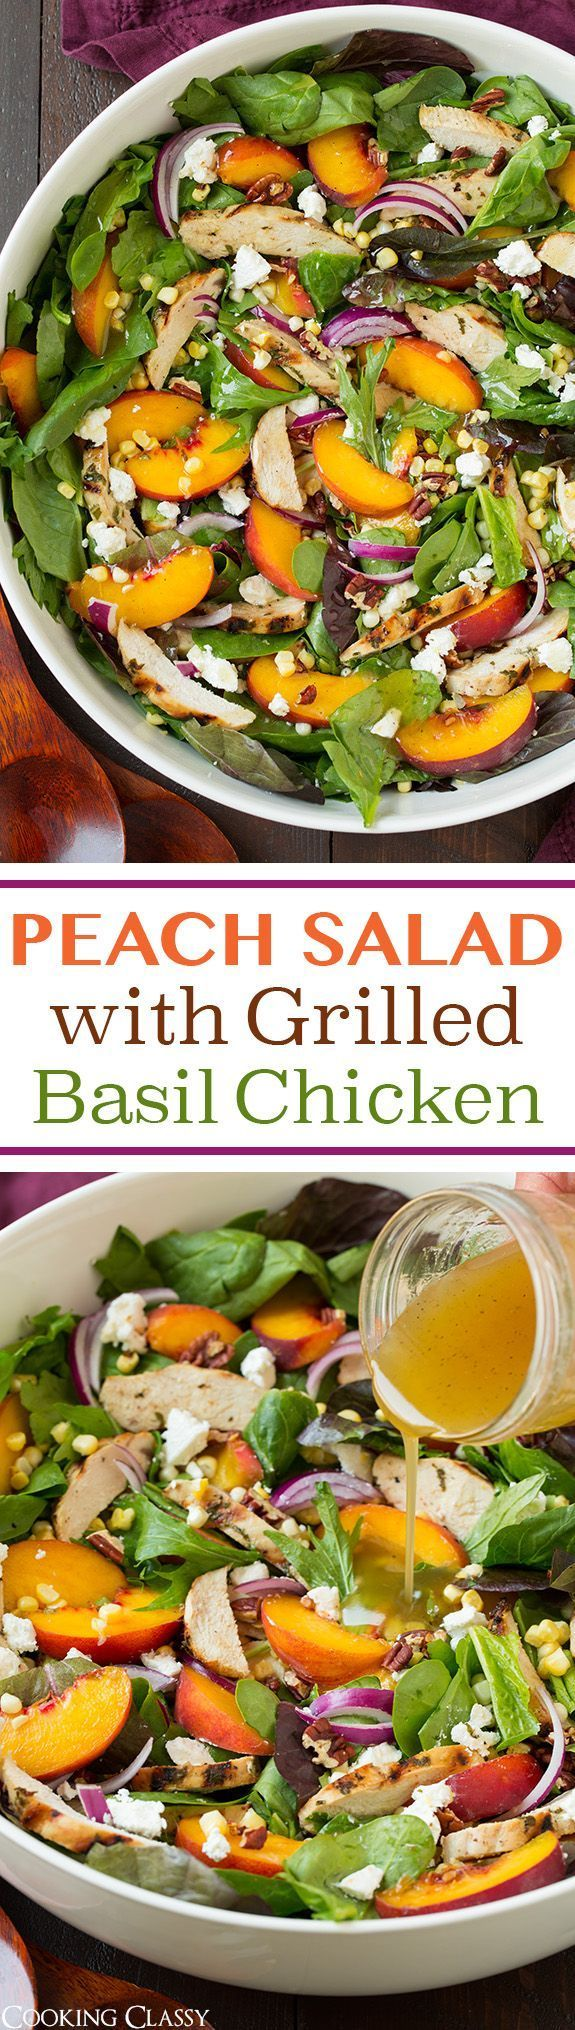 1000+ images about Food- salads on Pinterest | Salads, 3 day refresh ...